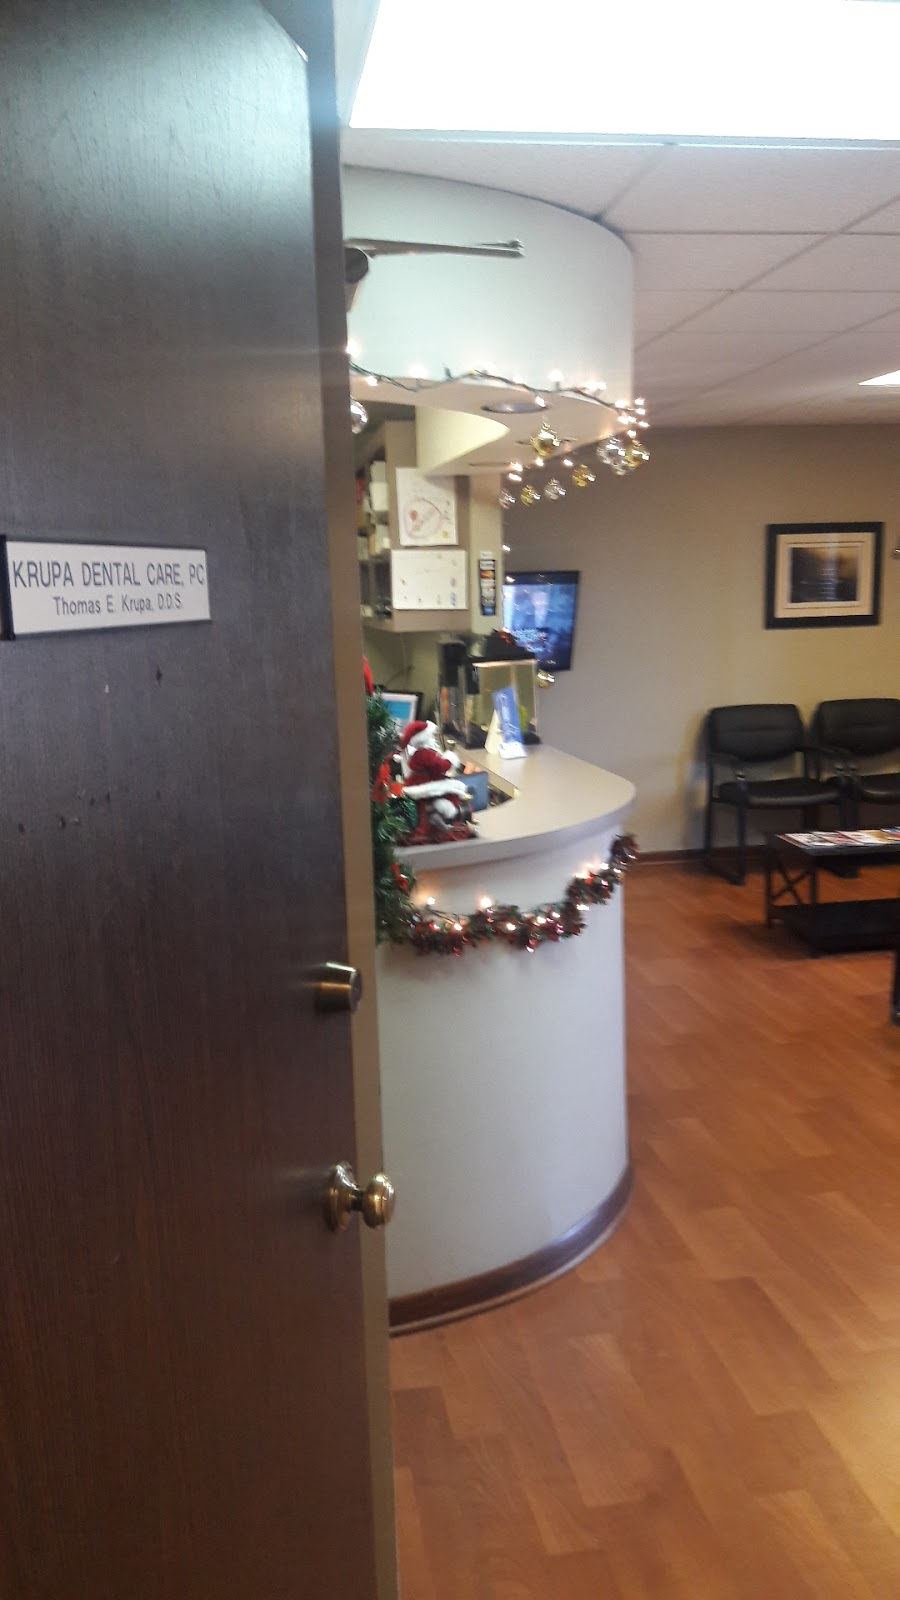 Krupa Dental Care - dentist    Photo 2 of 7   Address: 8240 Wolf Rd, Willow Springs, IL 60480, USA   Phone: (708) 839-5529